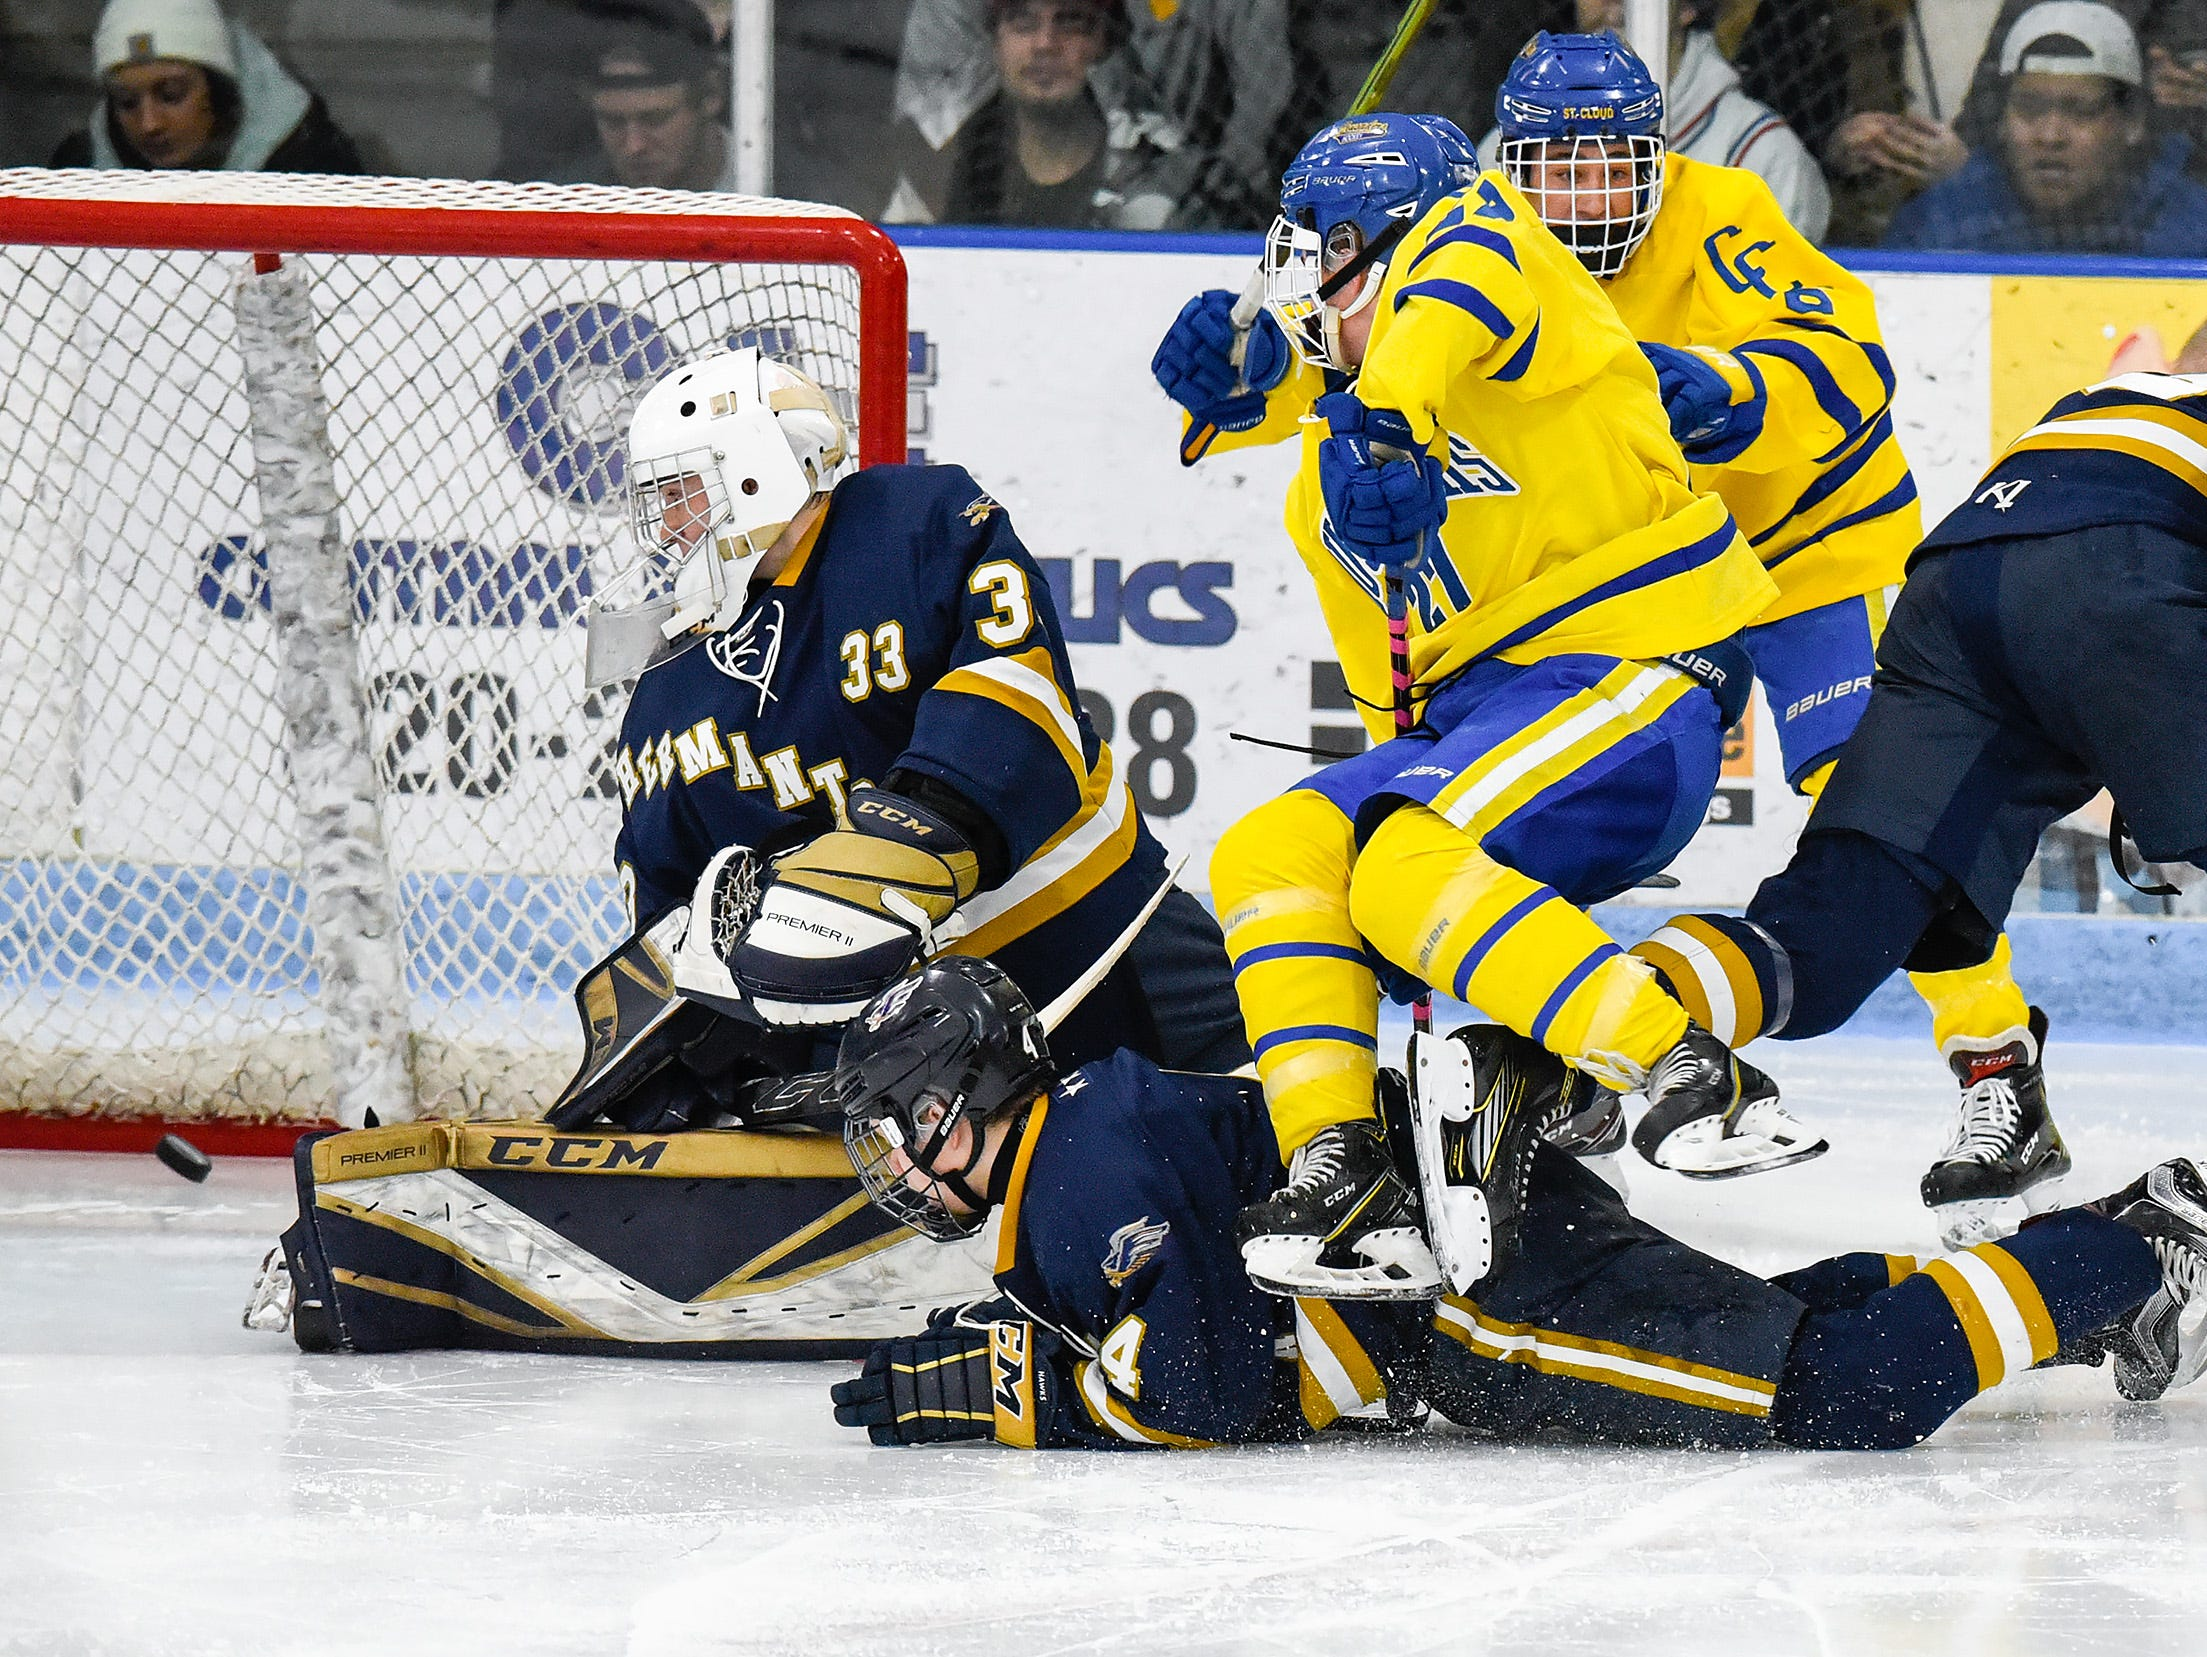 St. Cloud Cathedral's Blake Perbix, center, scores on Hermantown goalie Cole Manahan during the second period Friday, Jan. 4, at the MAC in St. Cloud.